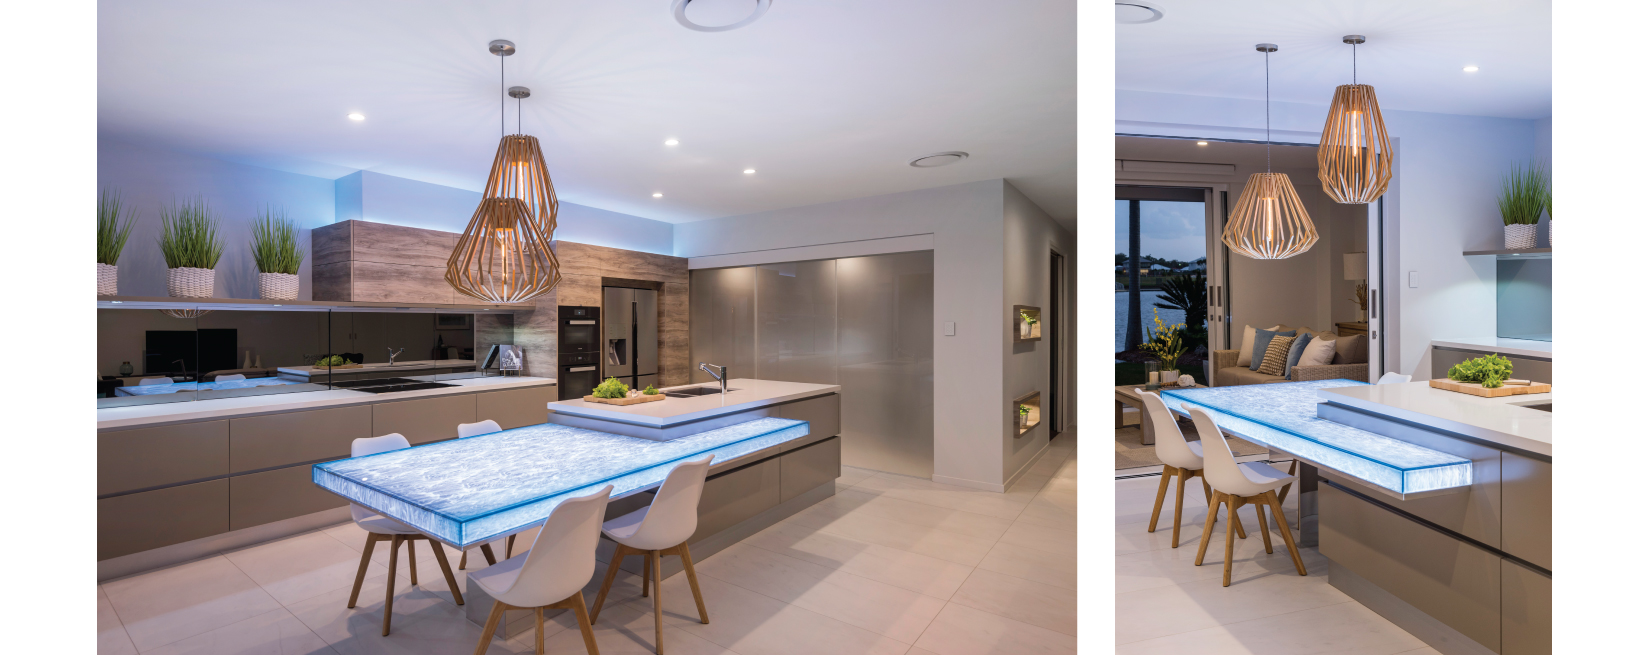 Kitchen Design & Renovation Brisbane Australia